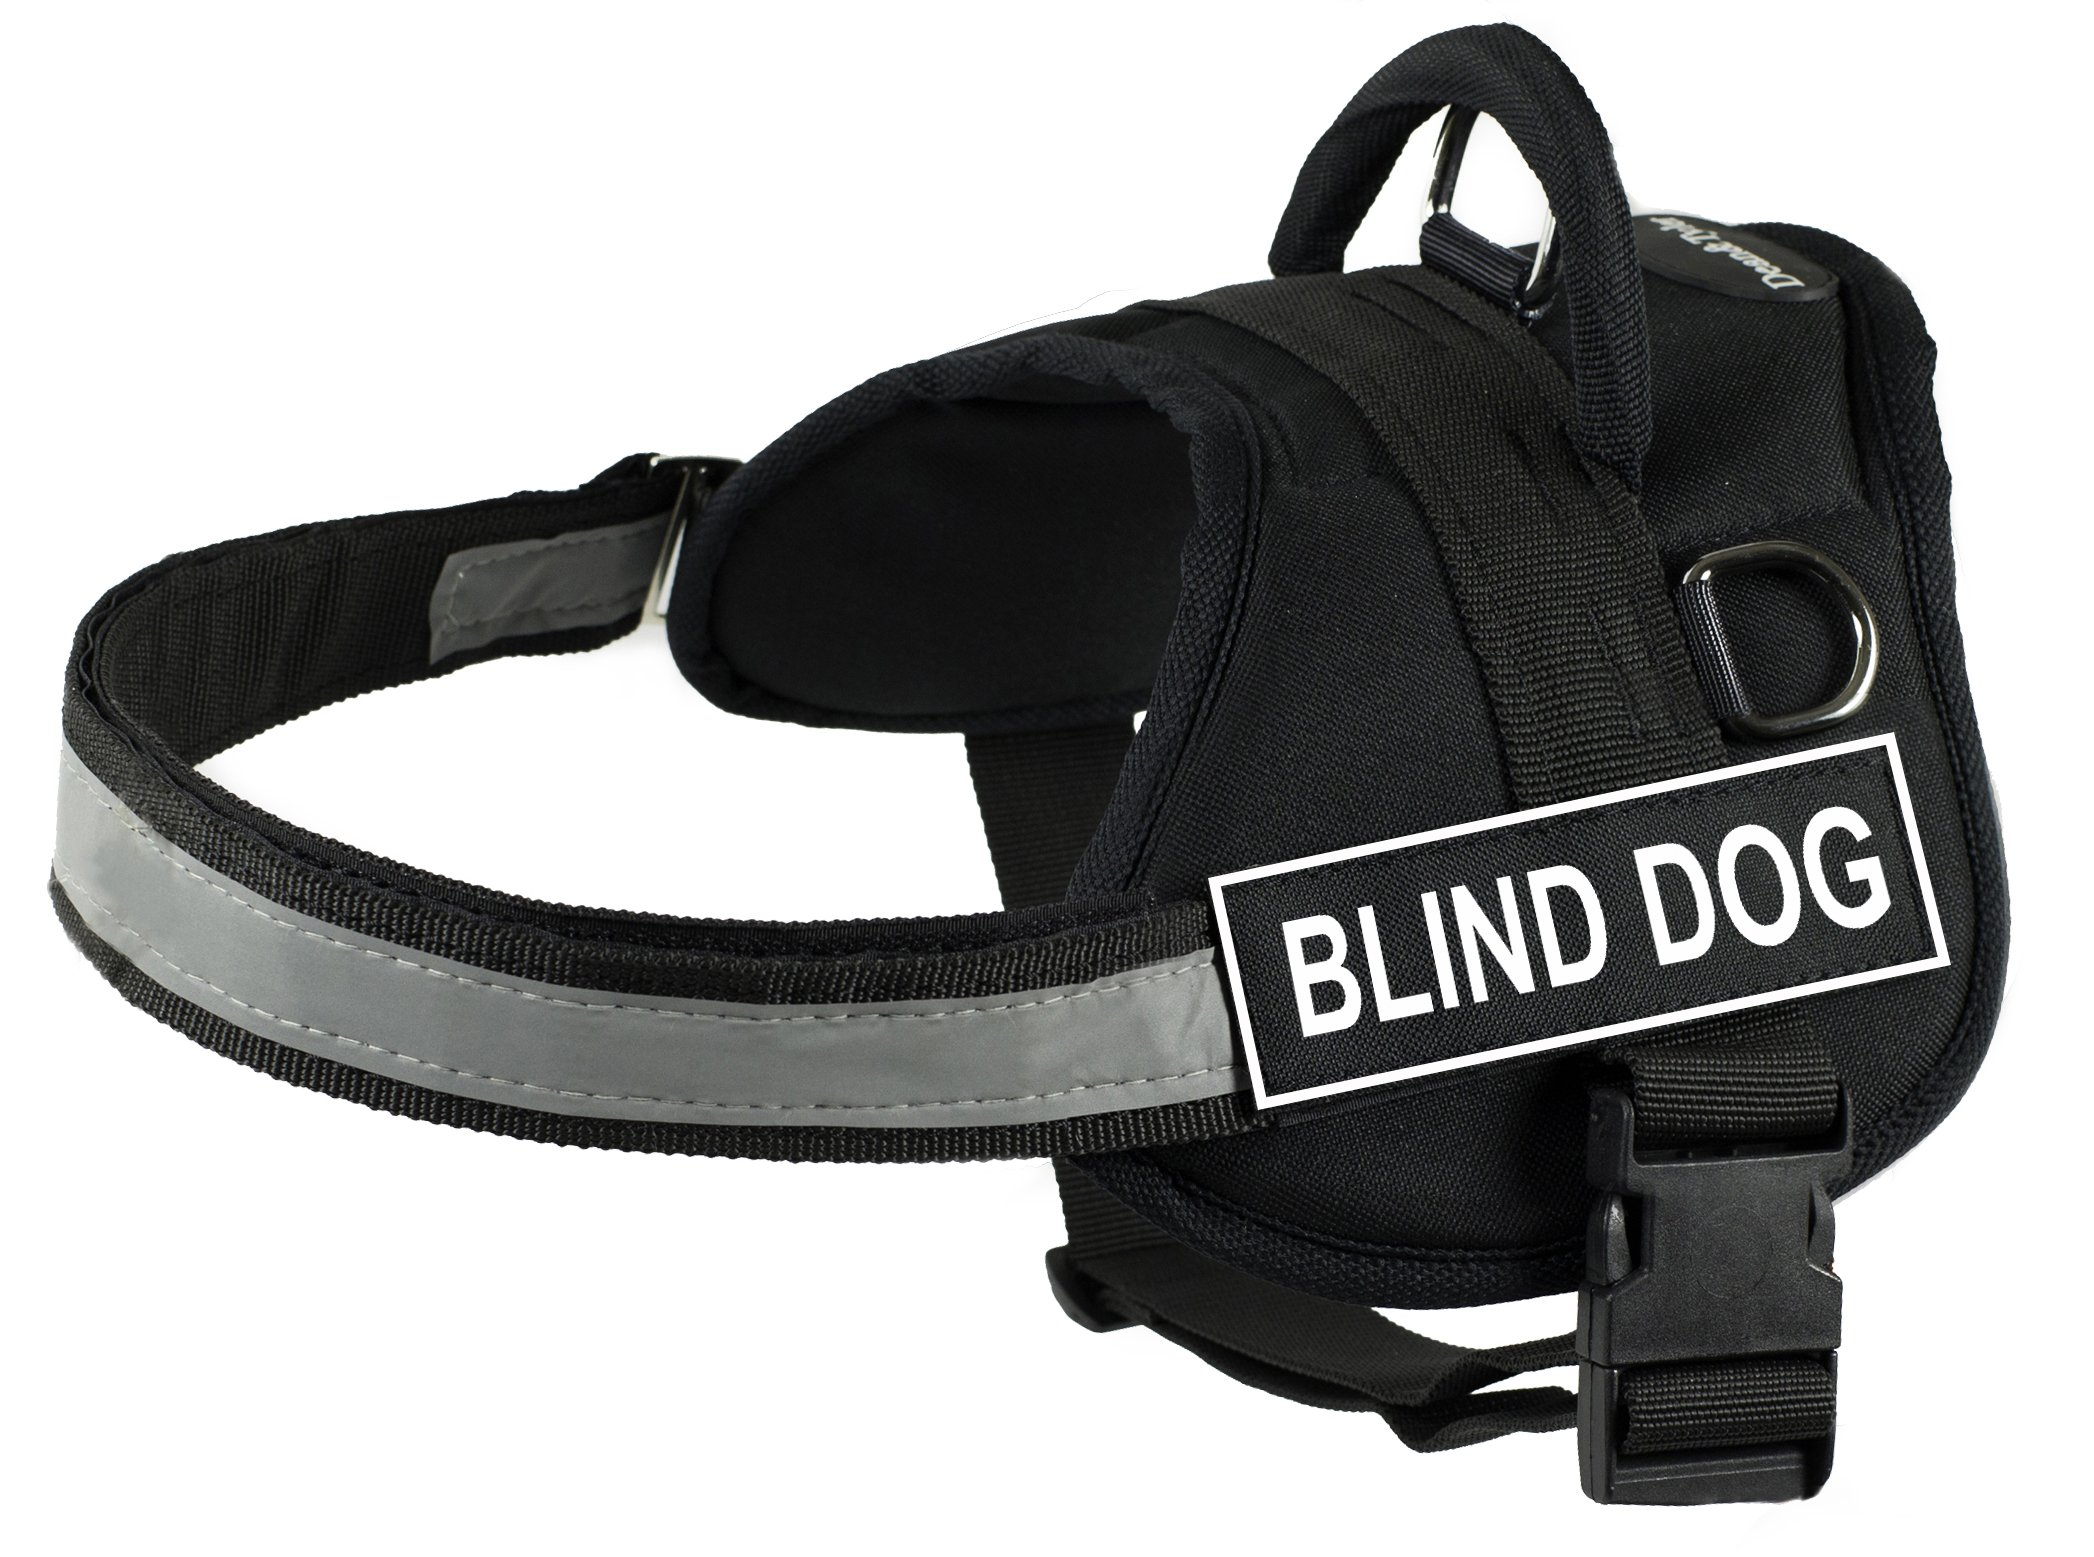 DT Works Harness, Blind Dog, Black/White, Medium - Fits Girth Size: 28-Inch to 38-Inch